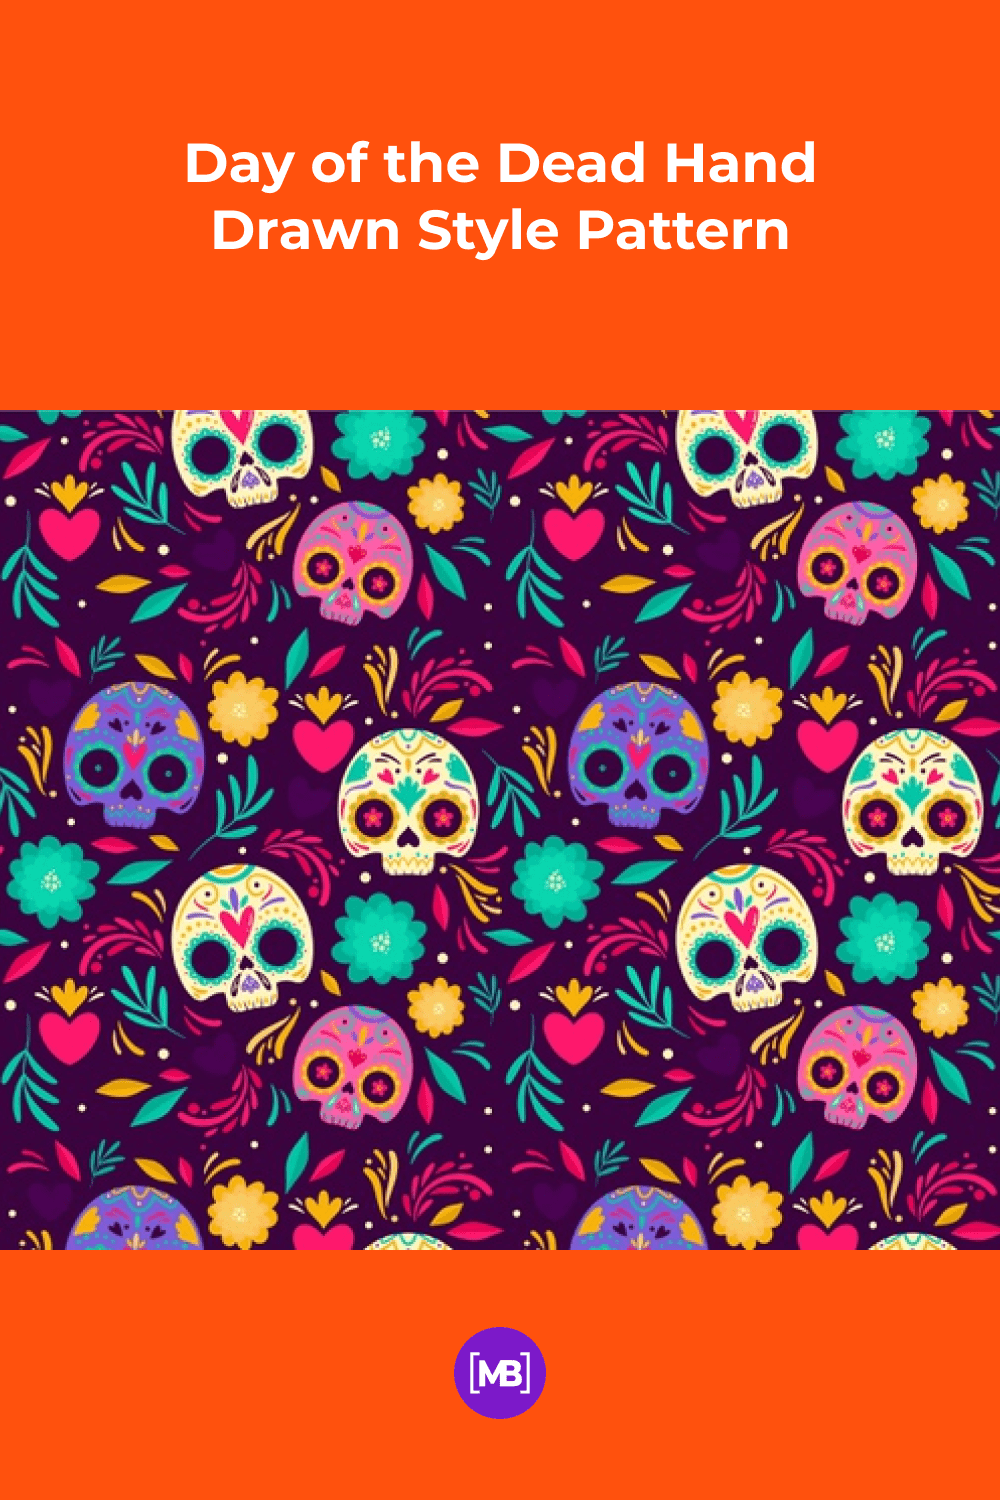 Day of the Dead Hand Drawn Style.